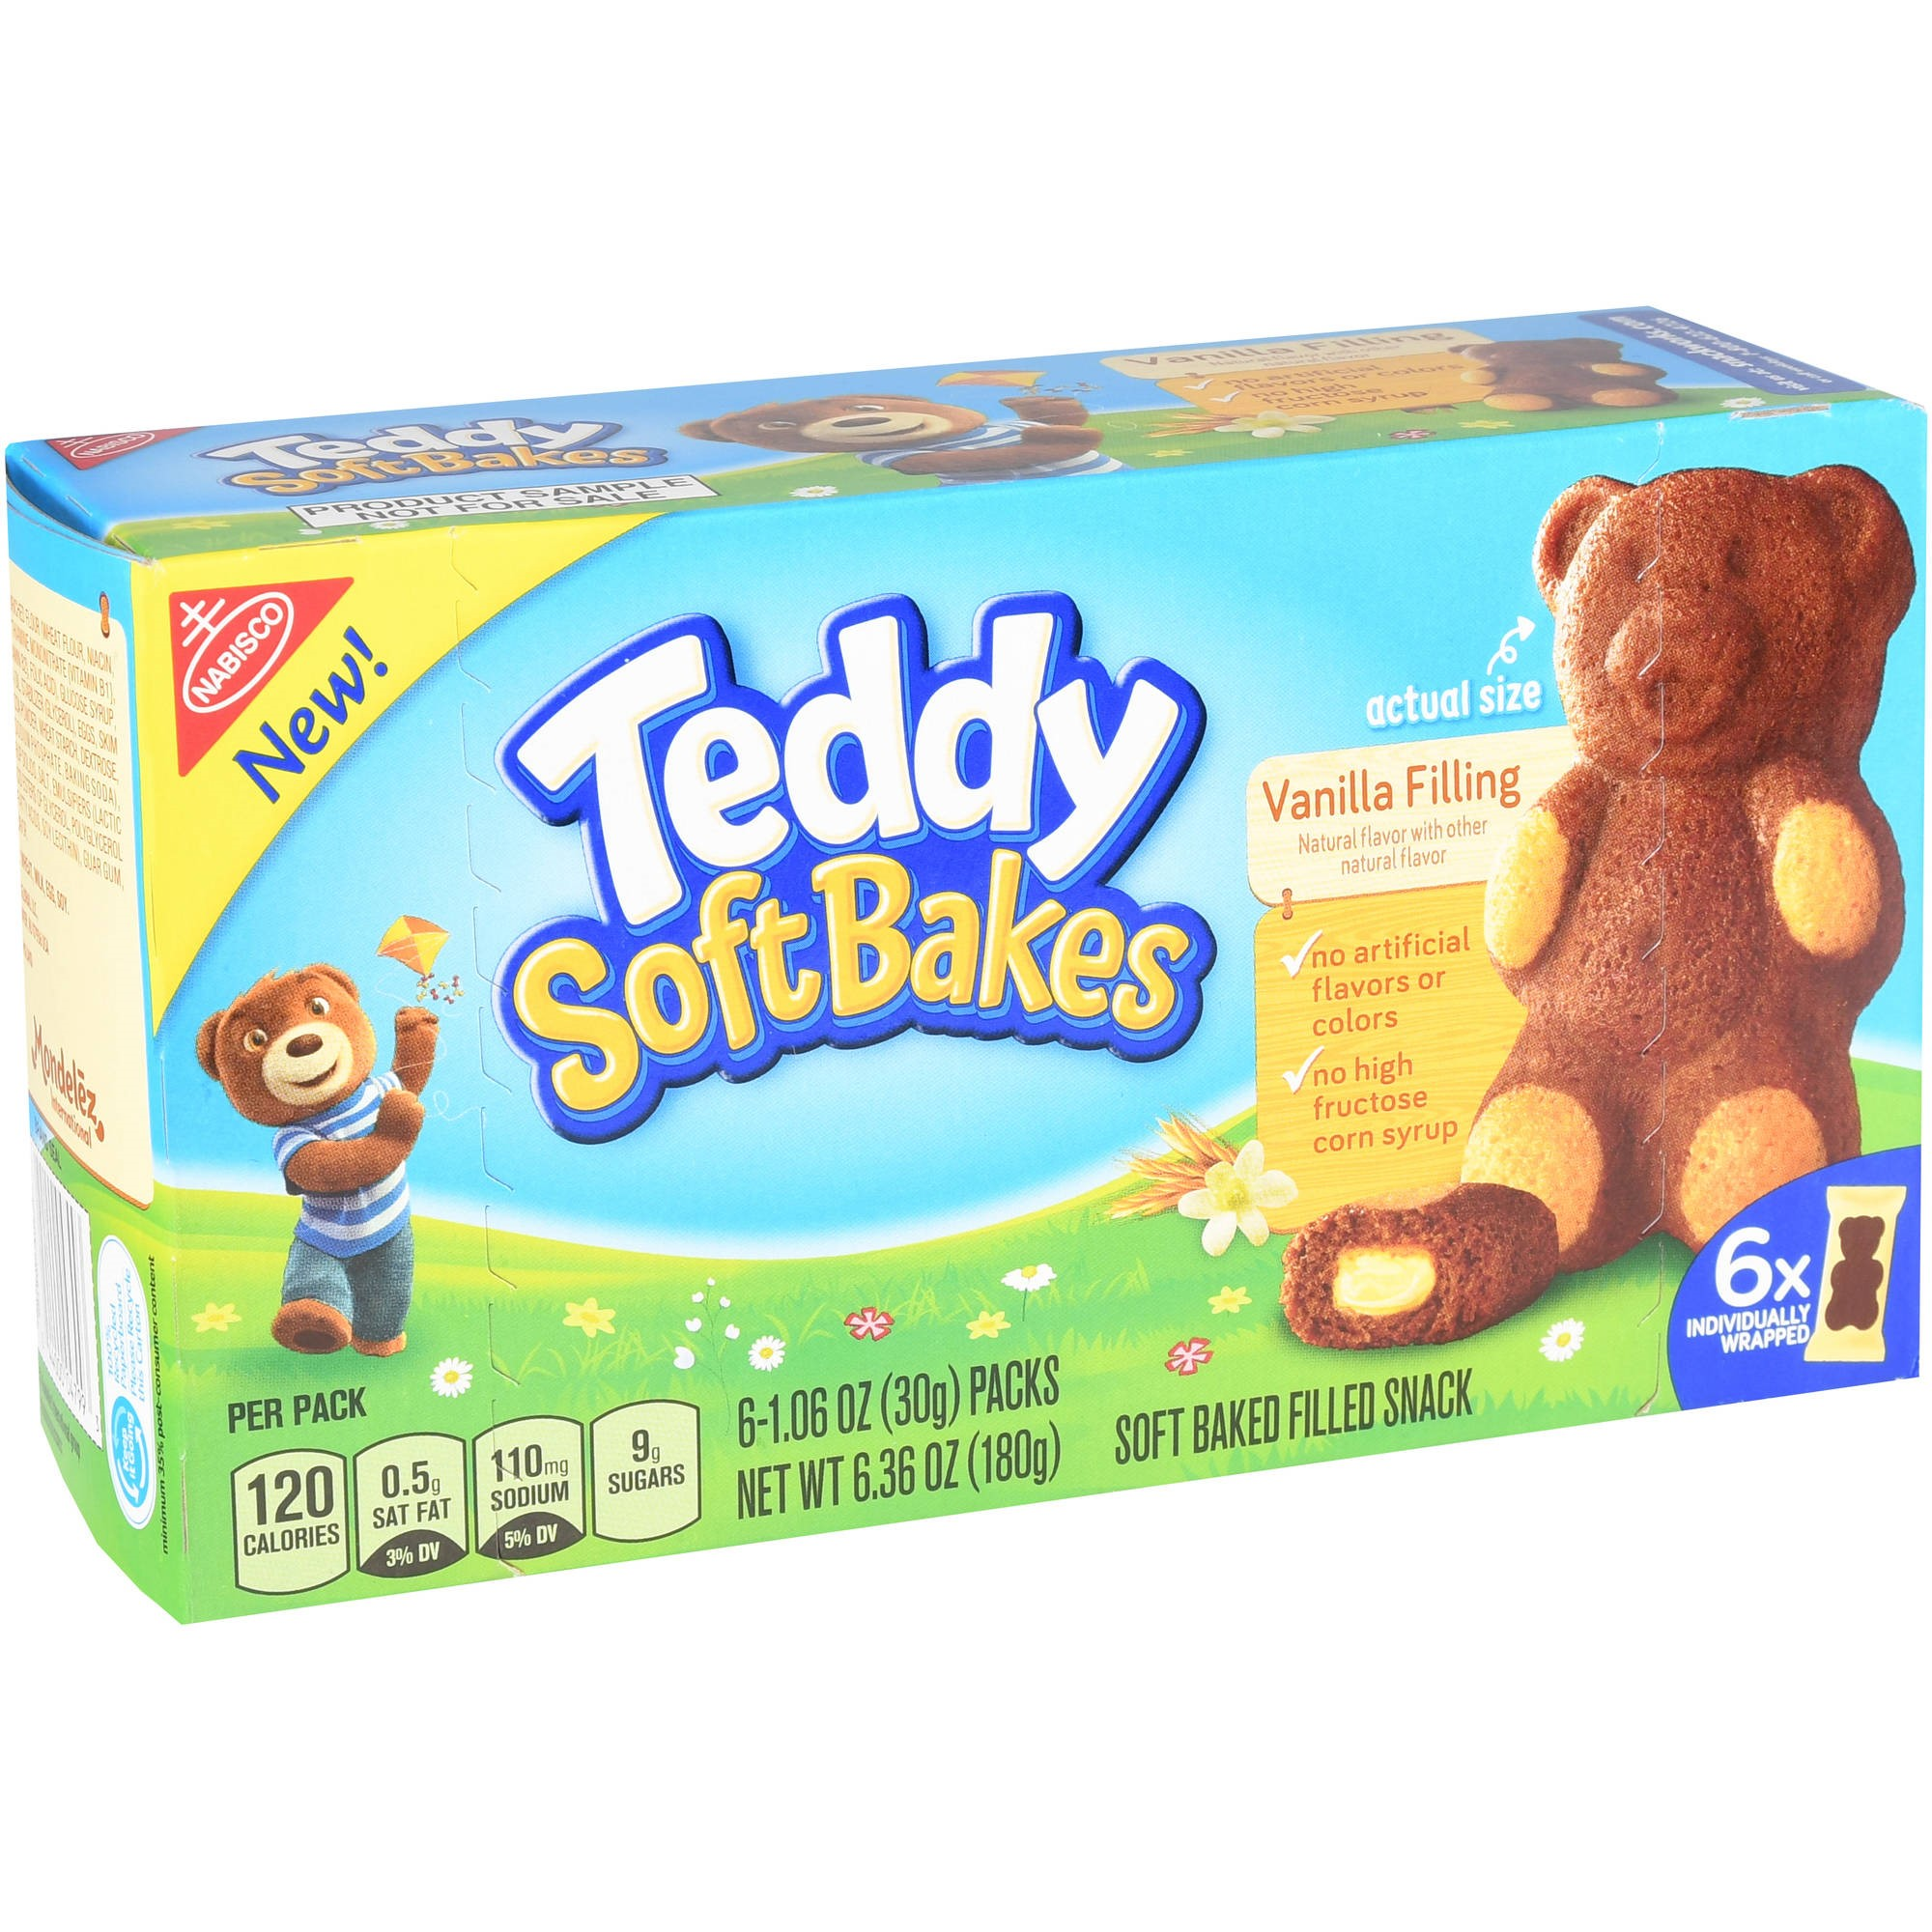 Teddy Soft Bakes Vanilla Filling - 6 CT